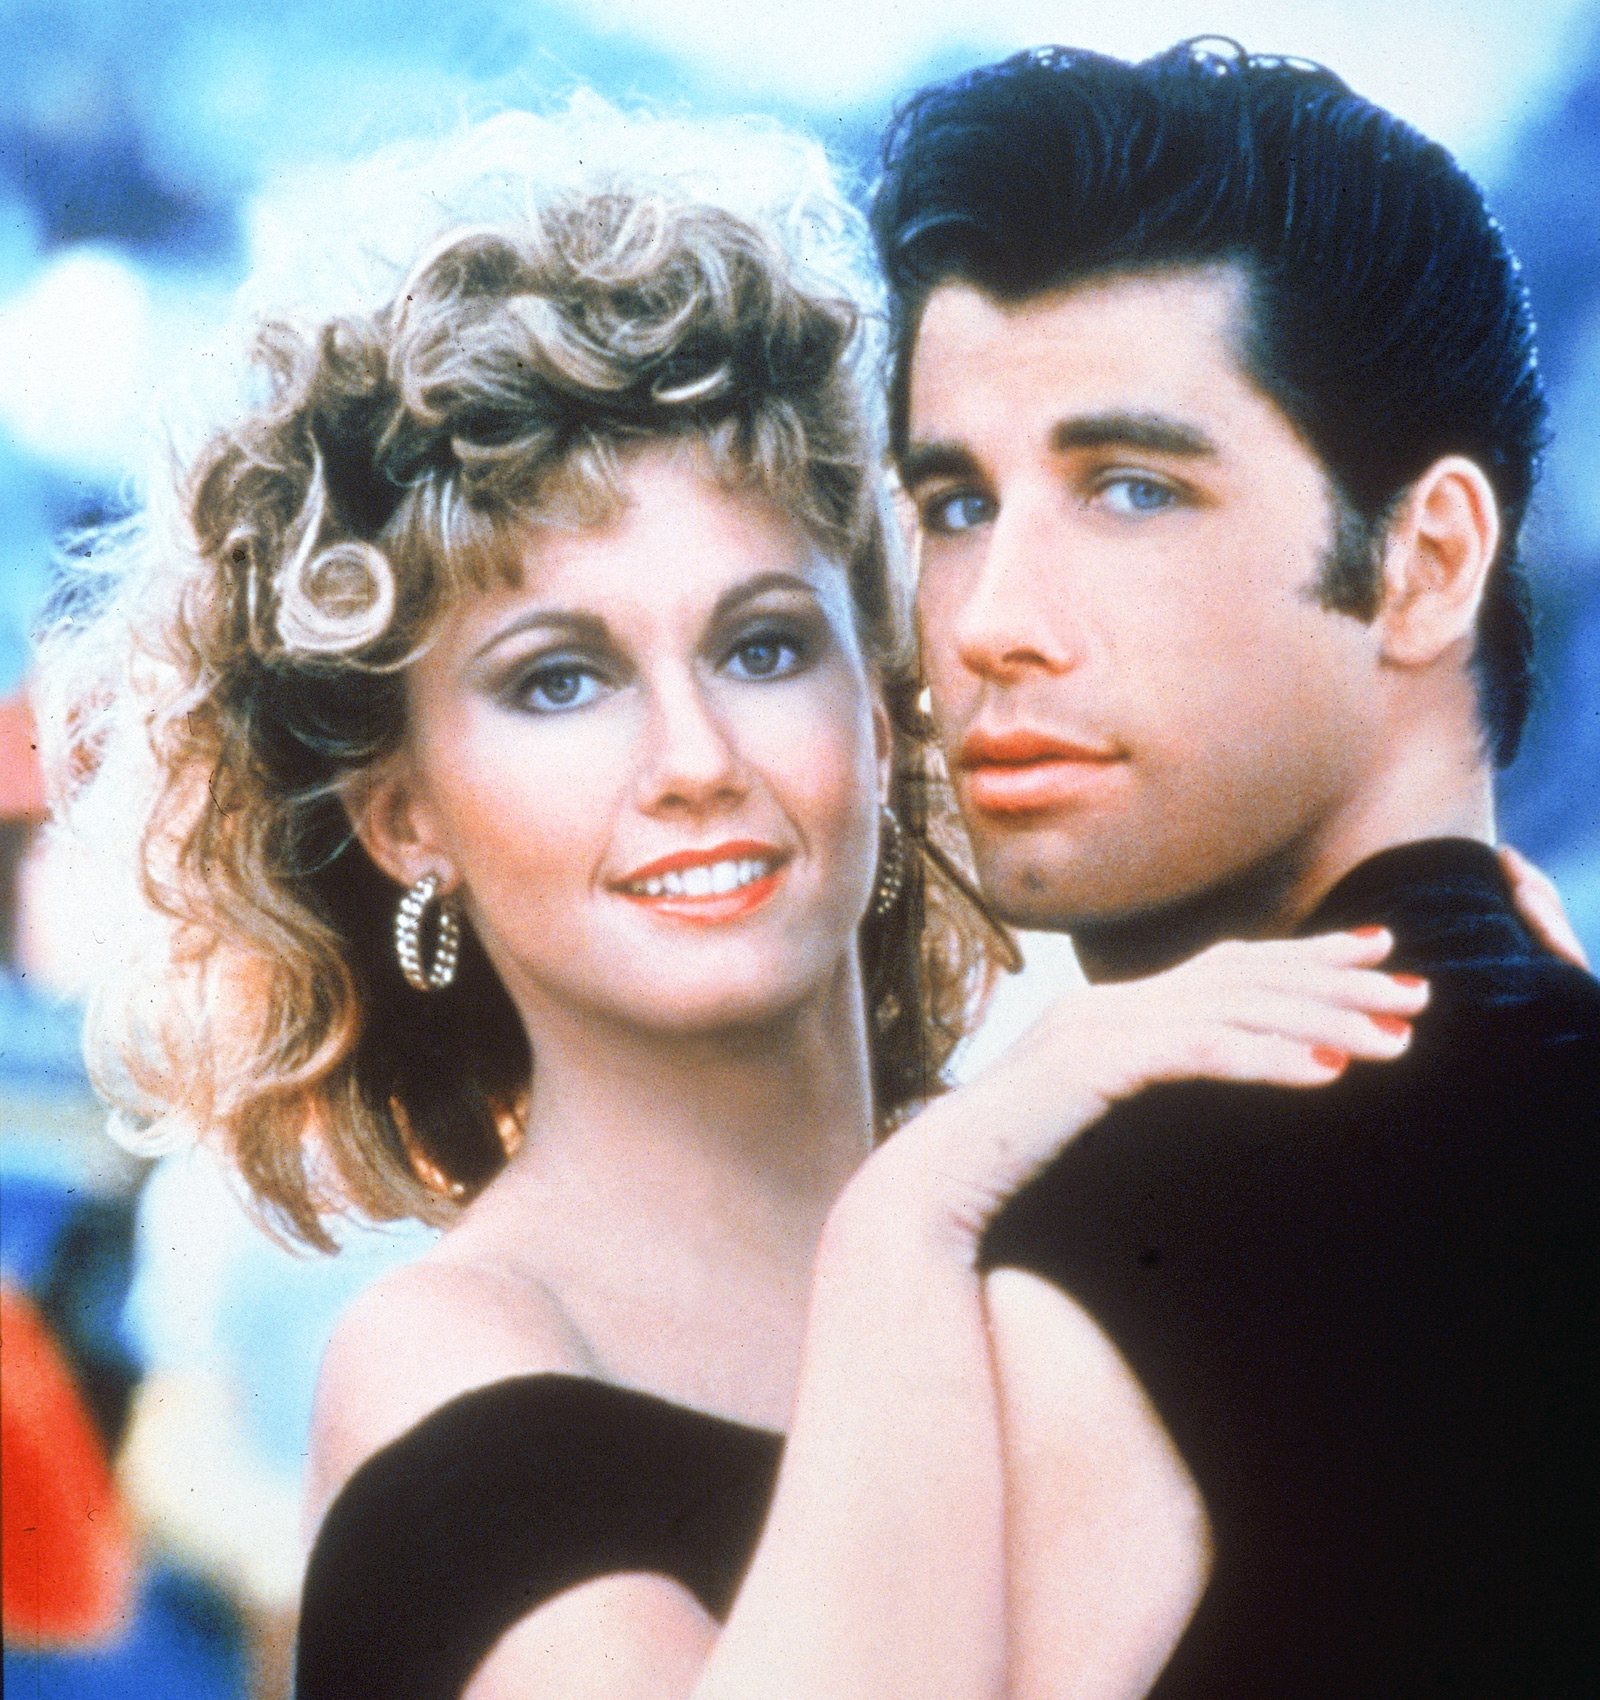 Watch how Grease was meant to end with Danny and Sandy